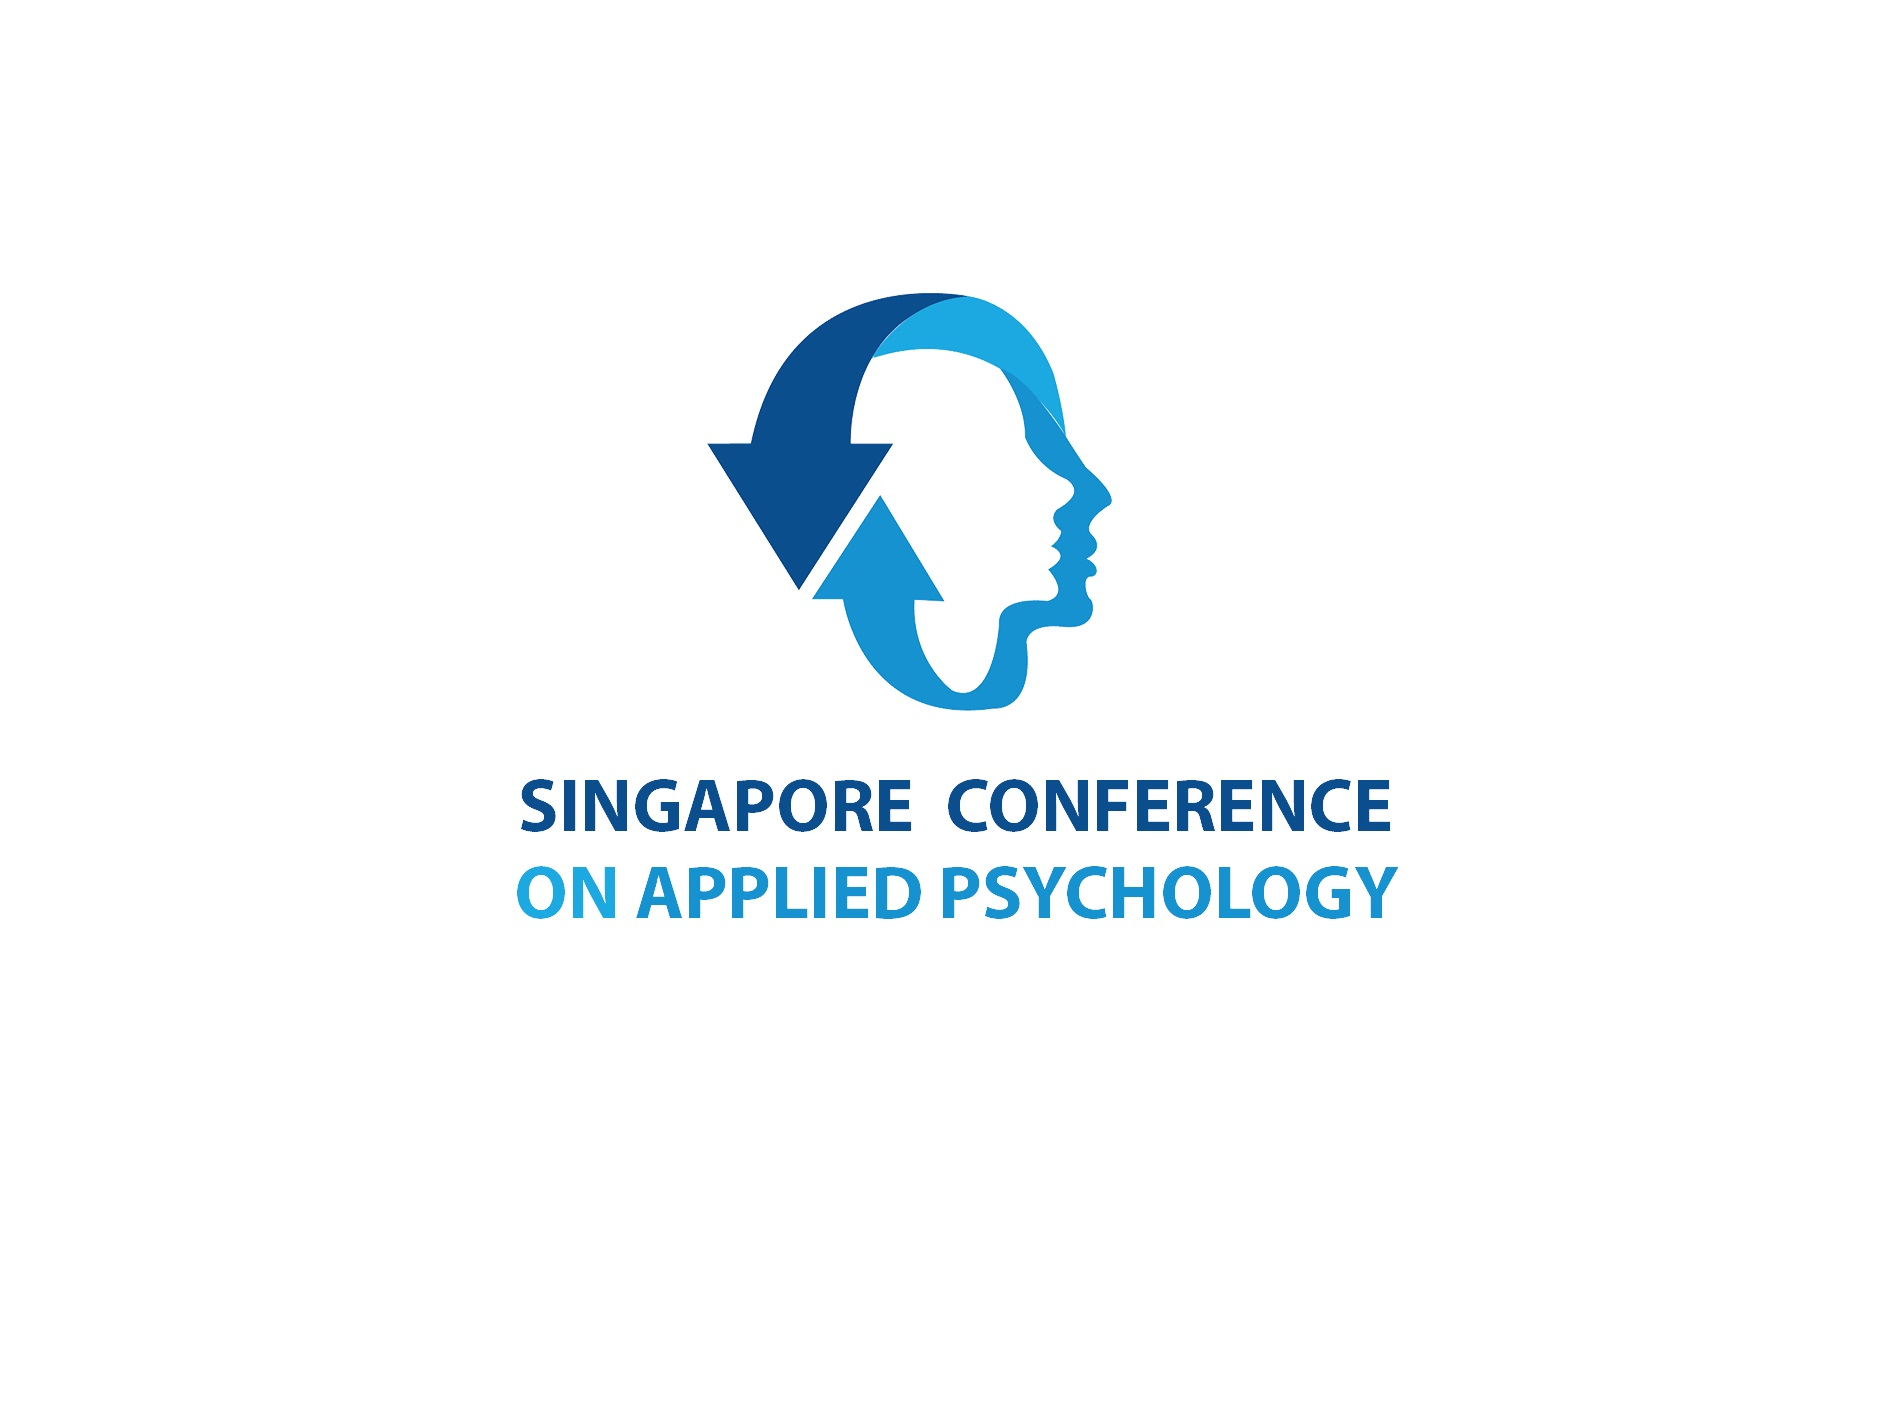 2019 Singapore Conference on Applied Psychology